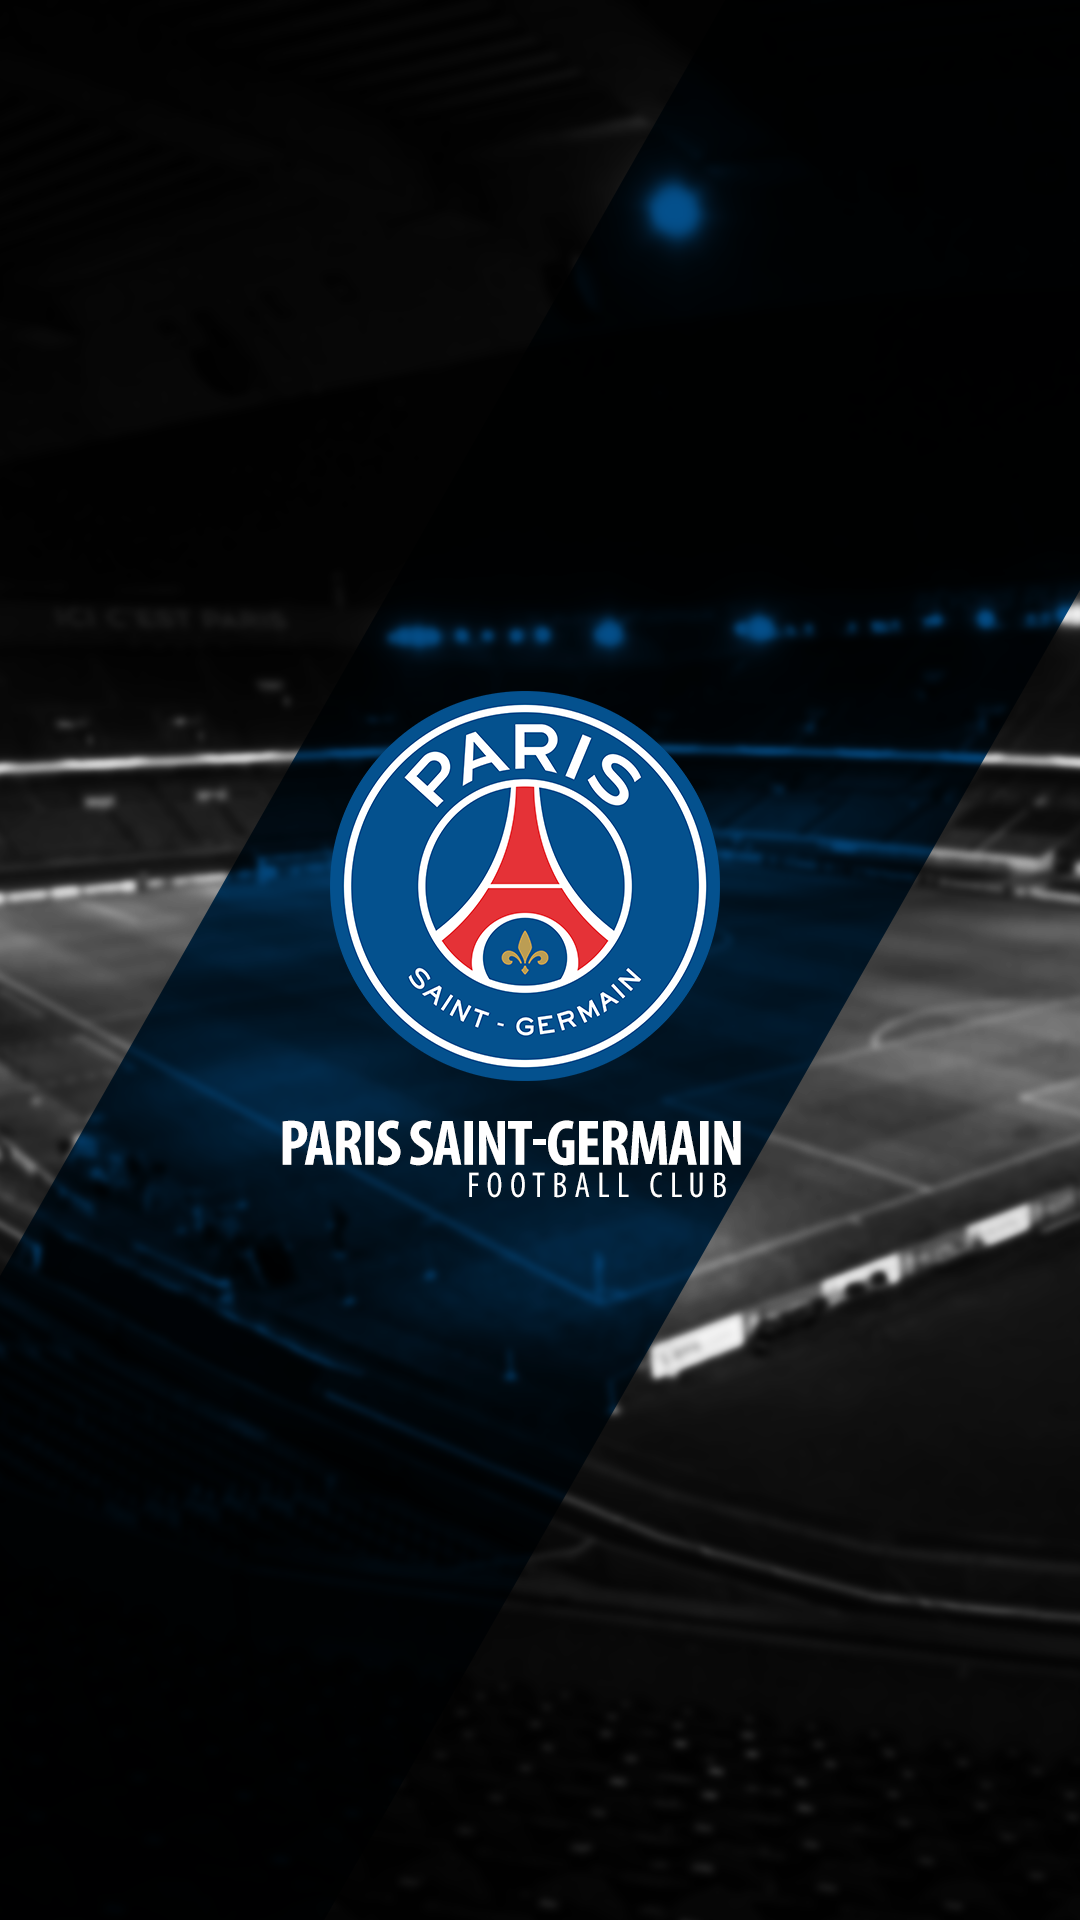 1080x1920 - Paris Saint-Germain F.C. Wallpapers 5